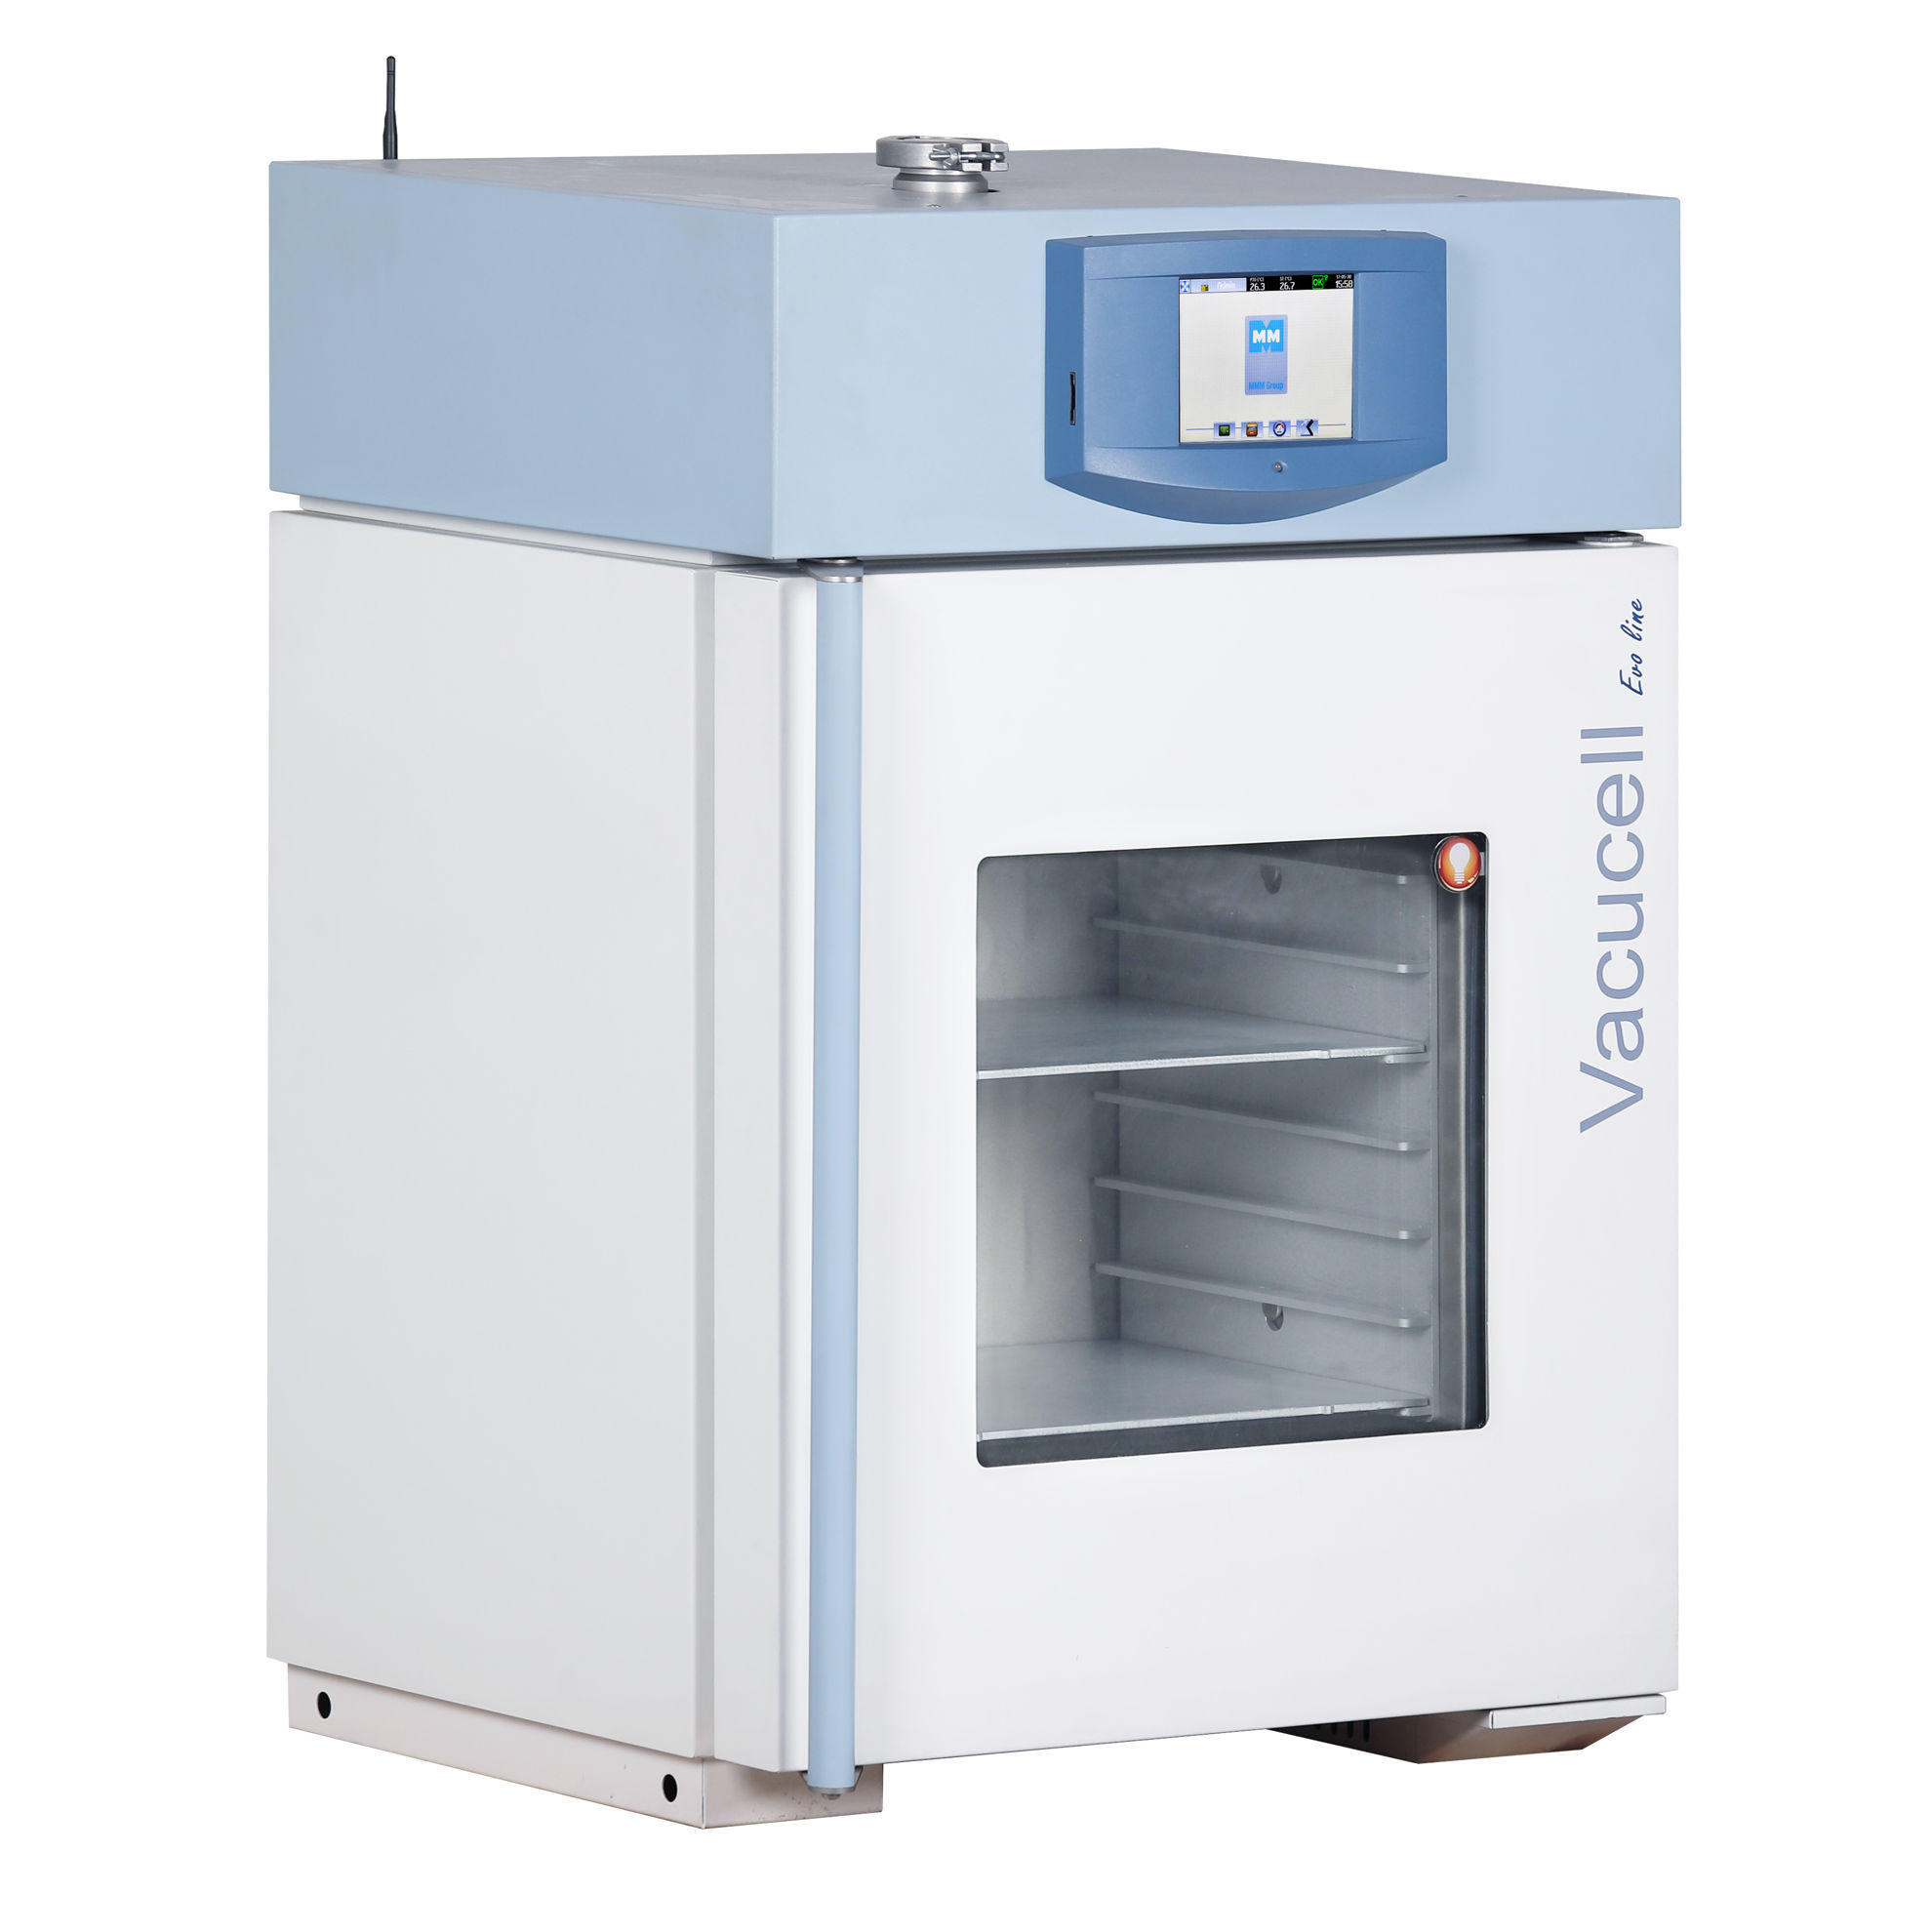 Picture of BMT Vacucell ECO Vacuum Ovens - MC000217